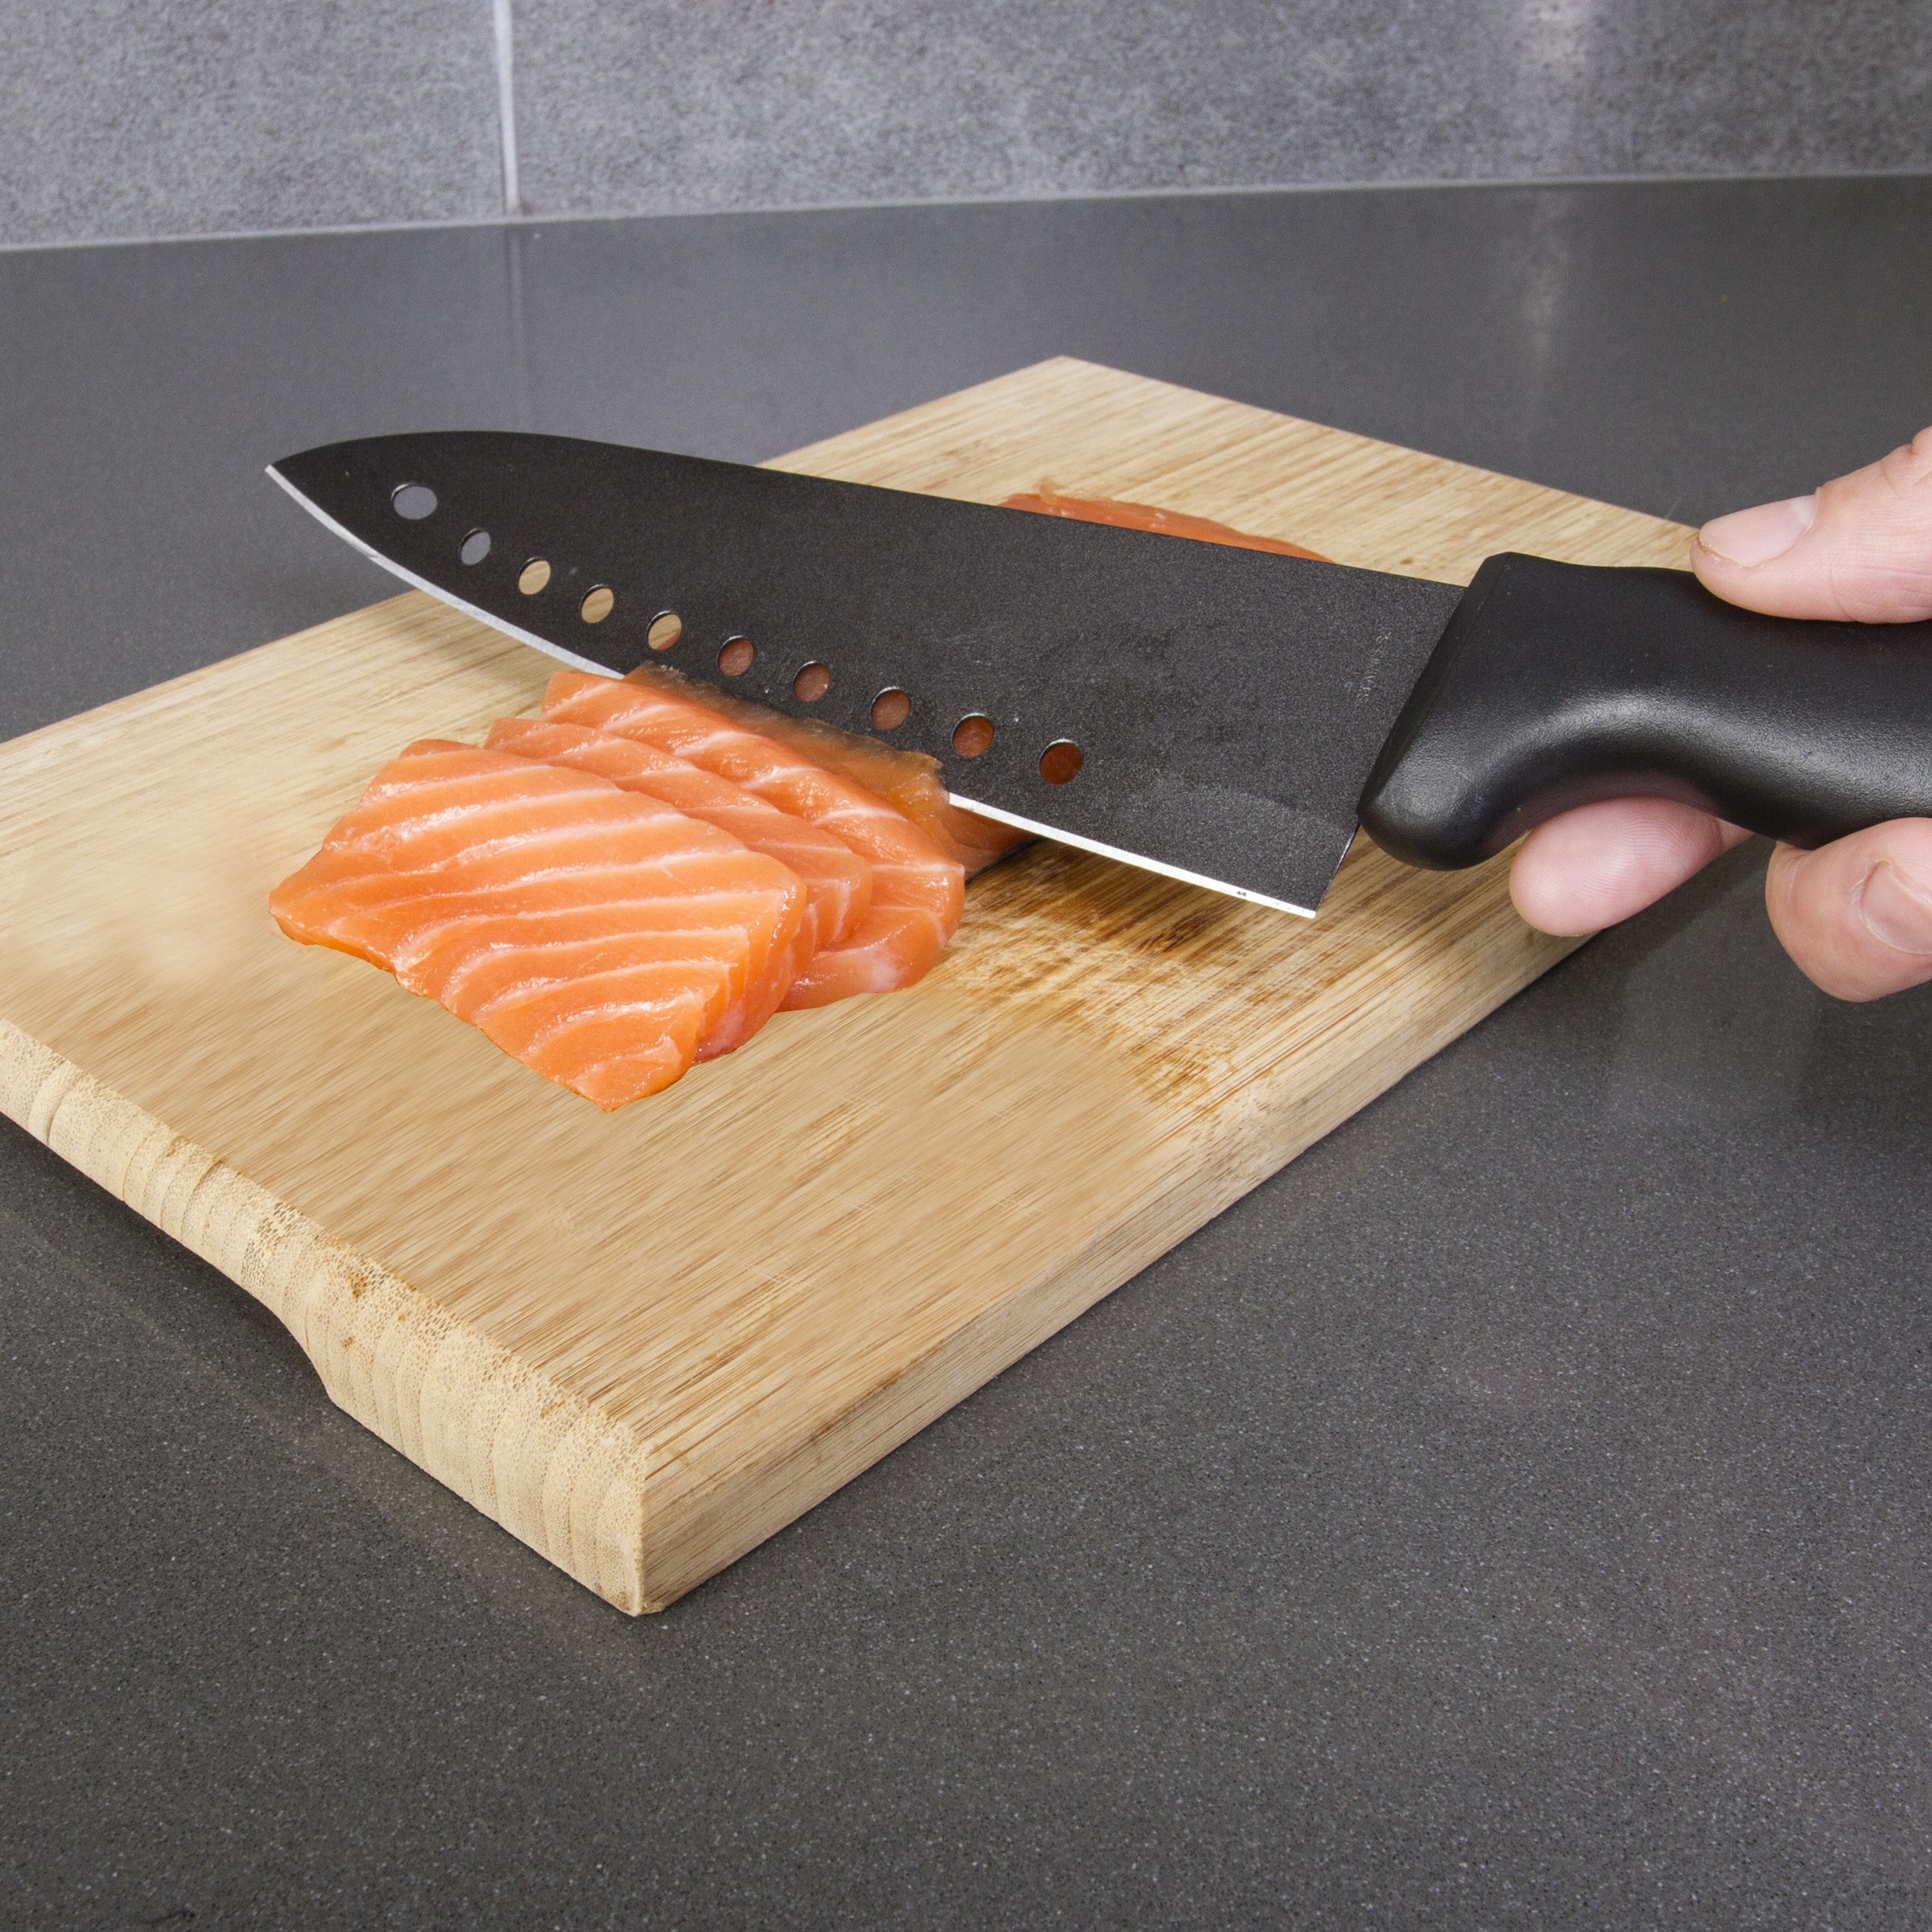 Kitchen + Home Non Stick Sushi Knife - The Original 8 inch Stainless Steel Non Stick Multipurpose Chef Knife by Kitchen + Home (Image #4)